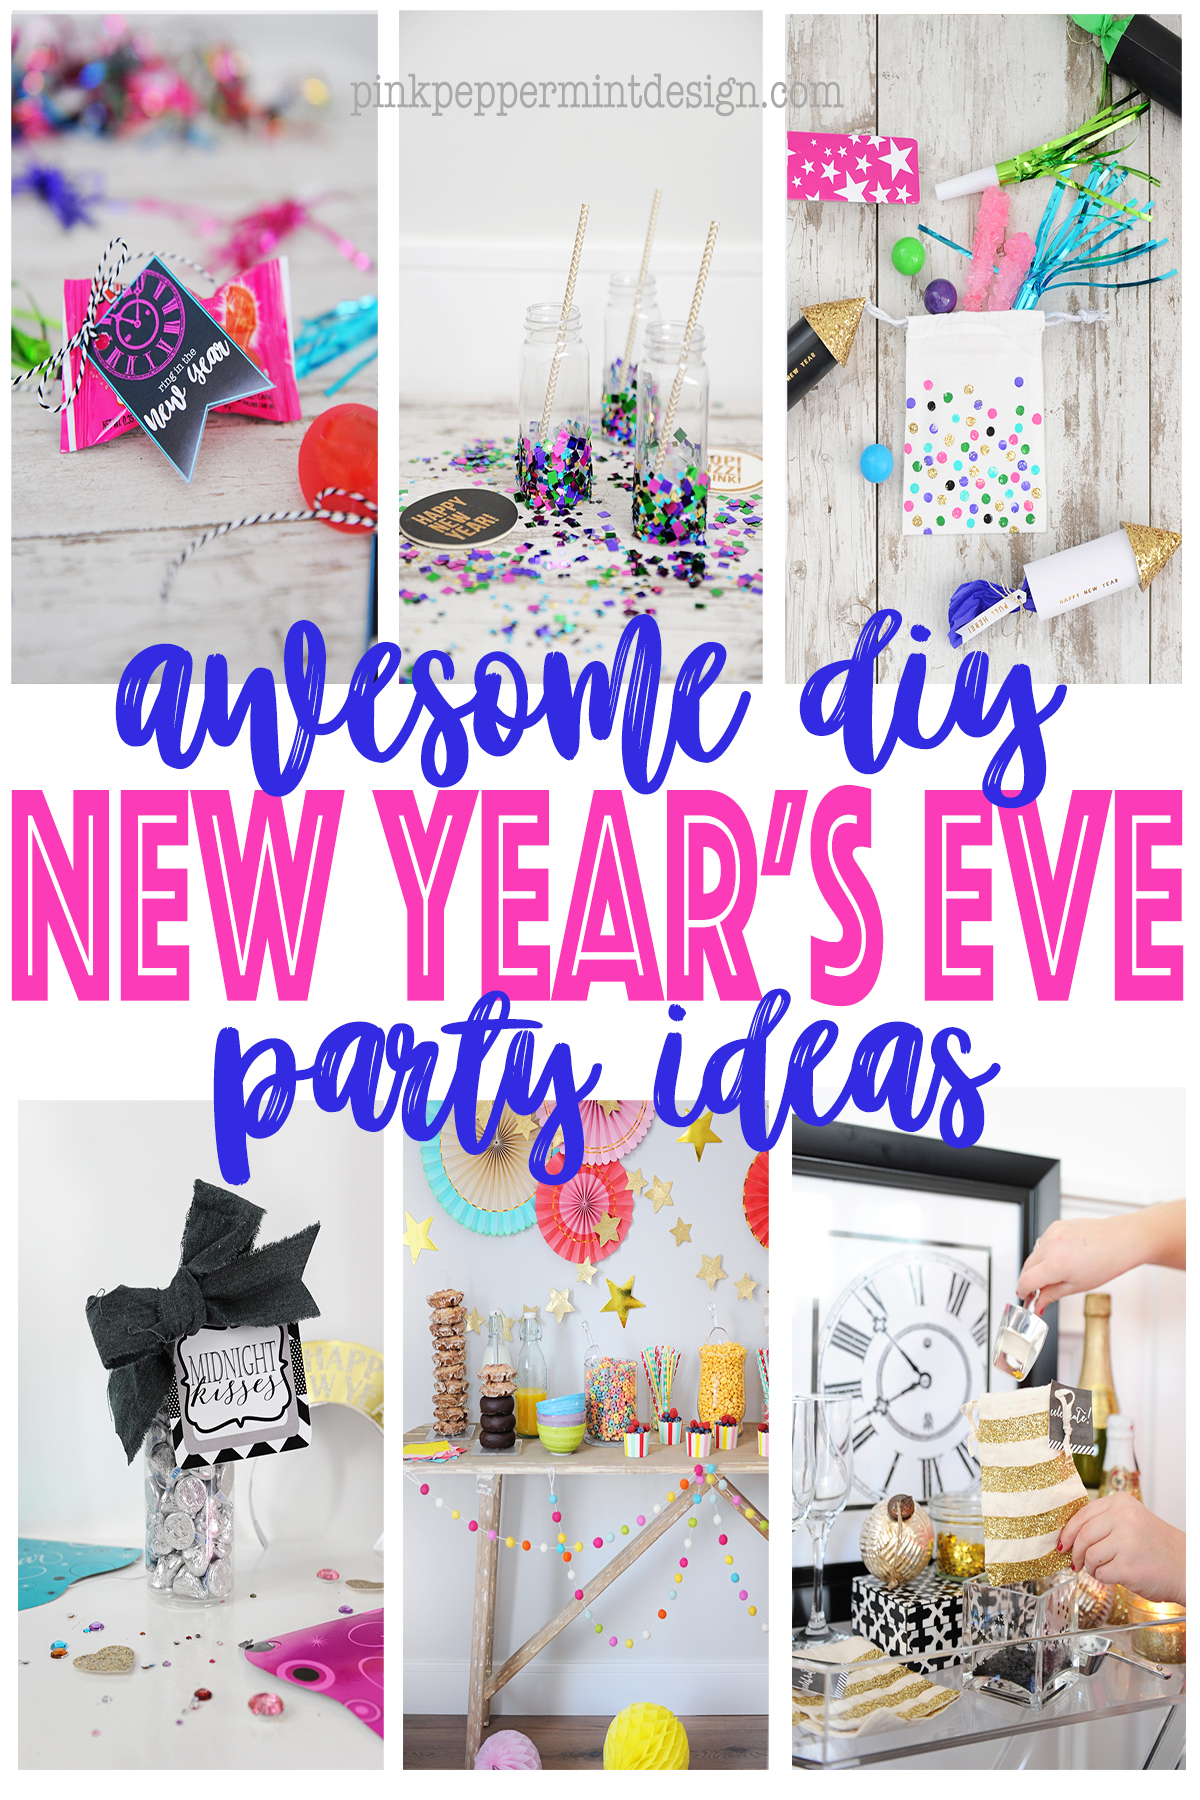 4x6 pink peppermint design diy new years eve party ideas